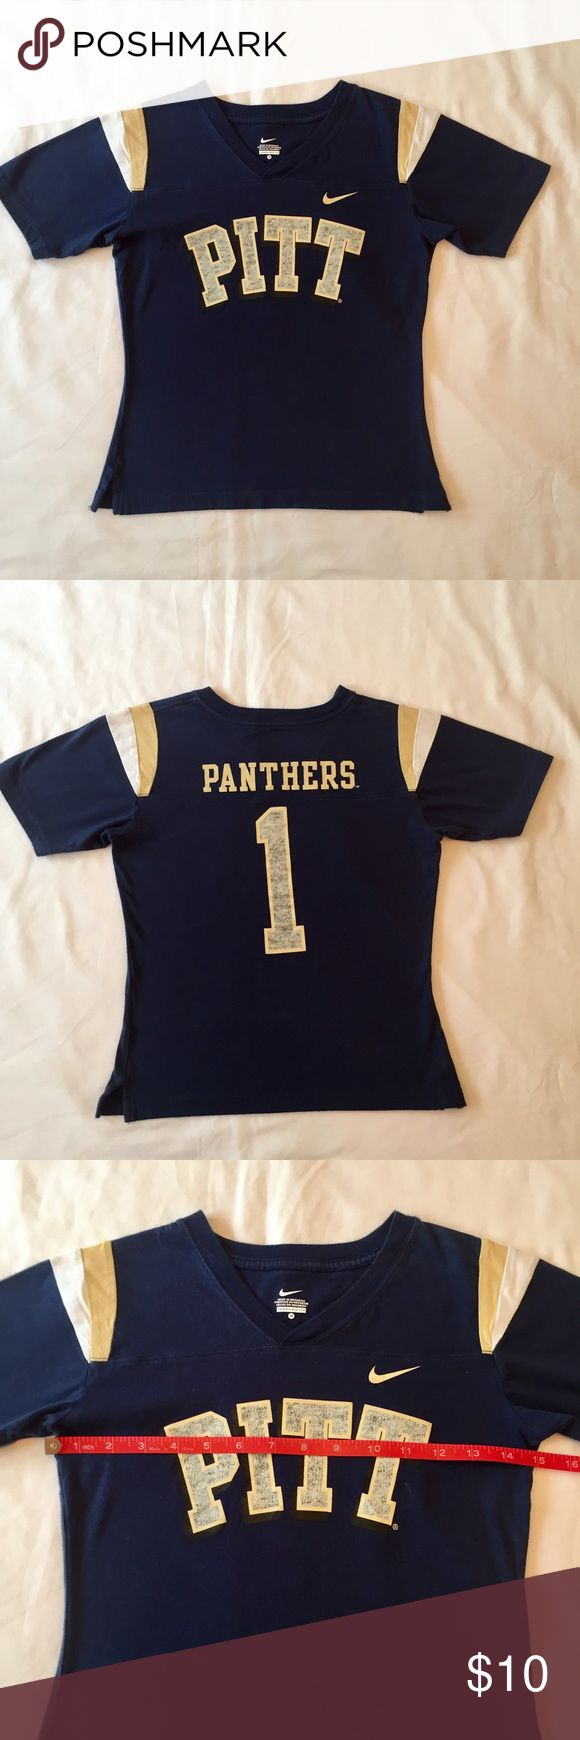 PITT UNIVERSITY OF PITTSBURGH GIRLS SHIRT FOOTBALL Go Pitt!  Really great condition on this little girls NIKE BRAND Pitt Football T-Shirt!  Size medium, please see pictures for more measurements.  No material tag, soft and stretchy. Cool sweater pattern on the Pitt and number 1 prints.  Freshly laundered and pressed.  Free of smoke and pets.  NCMCOLLECTIONS 💐 Nike Shirts & Tops Tees - Short Sleeve